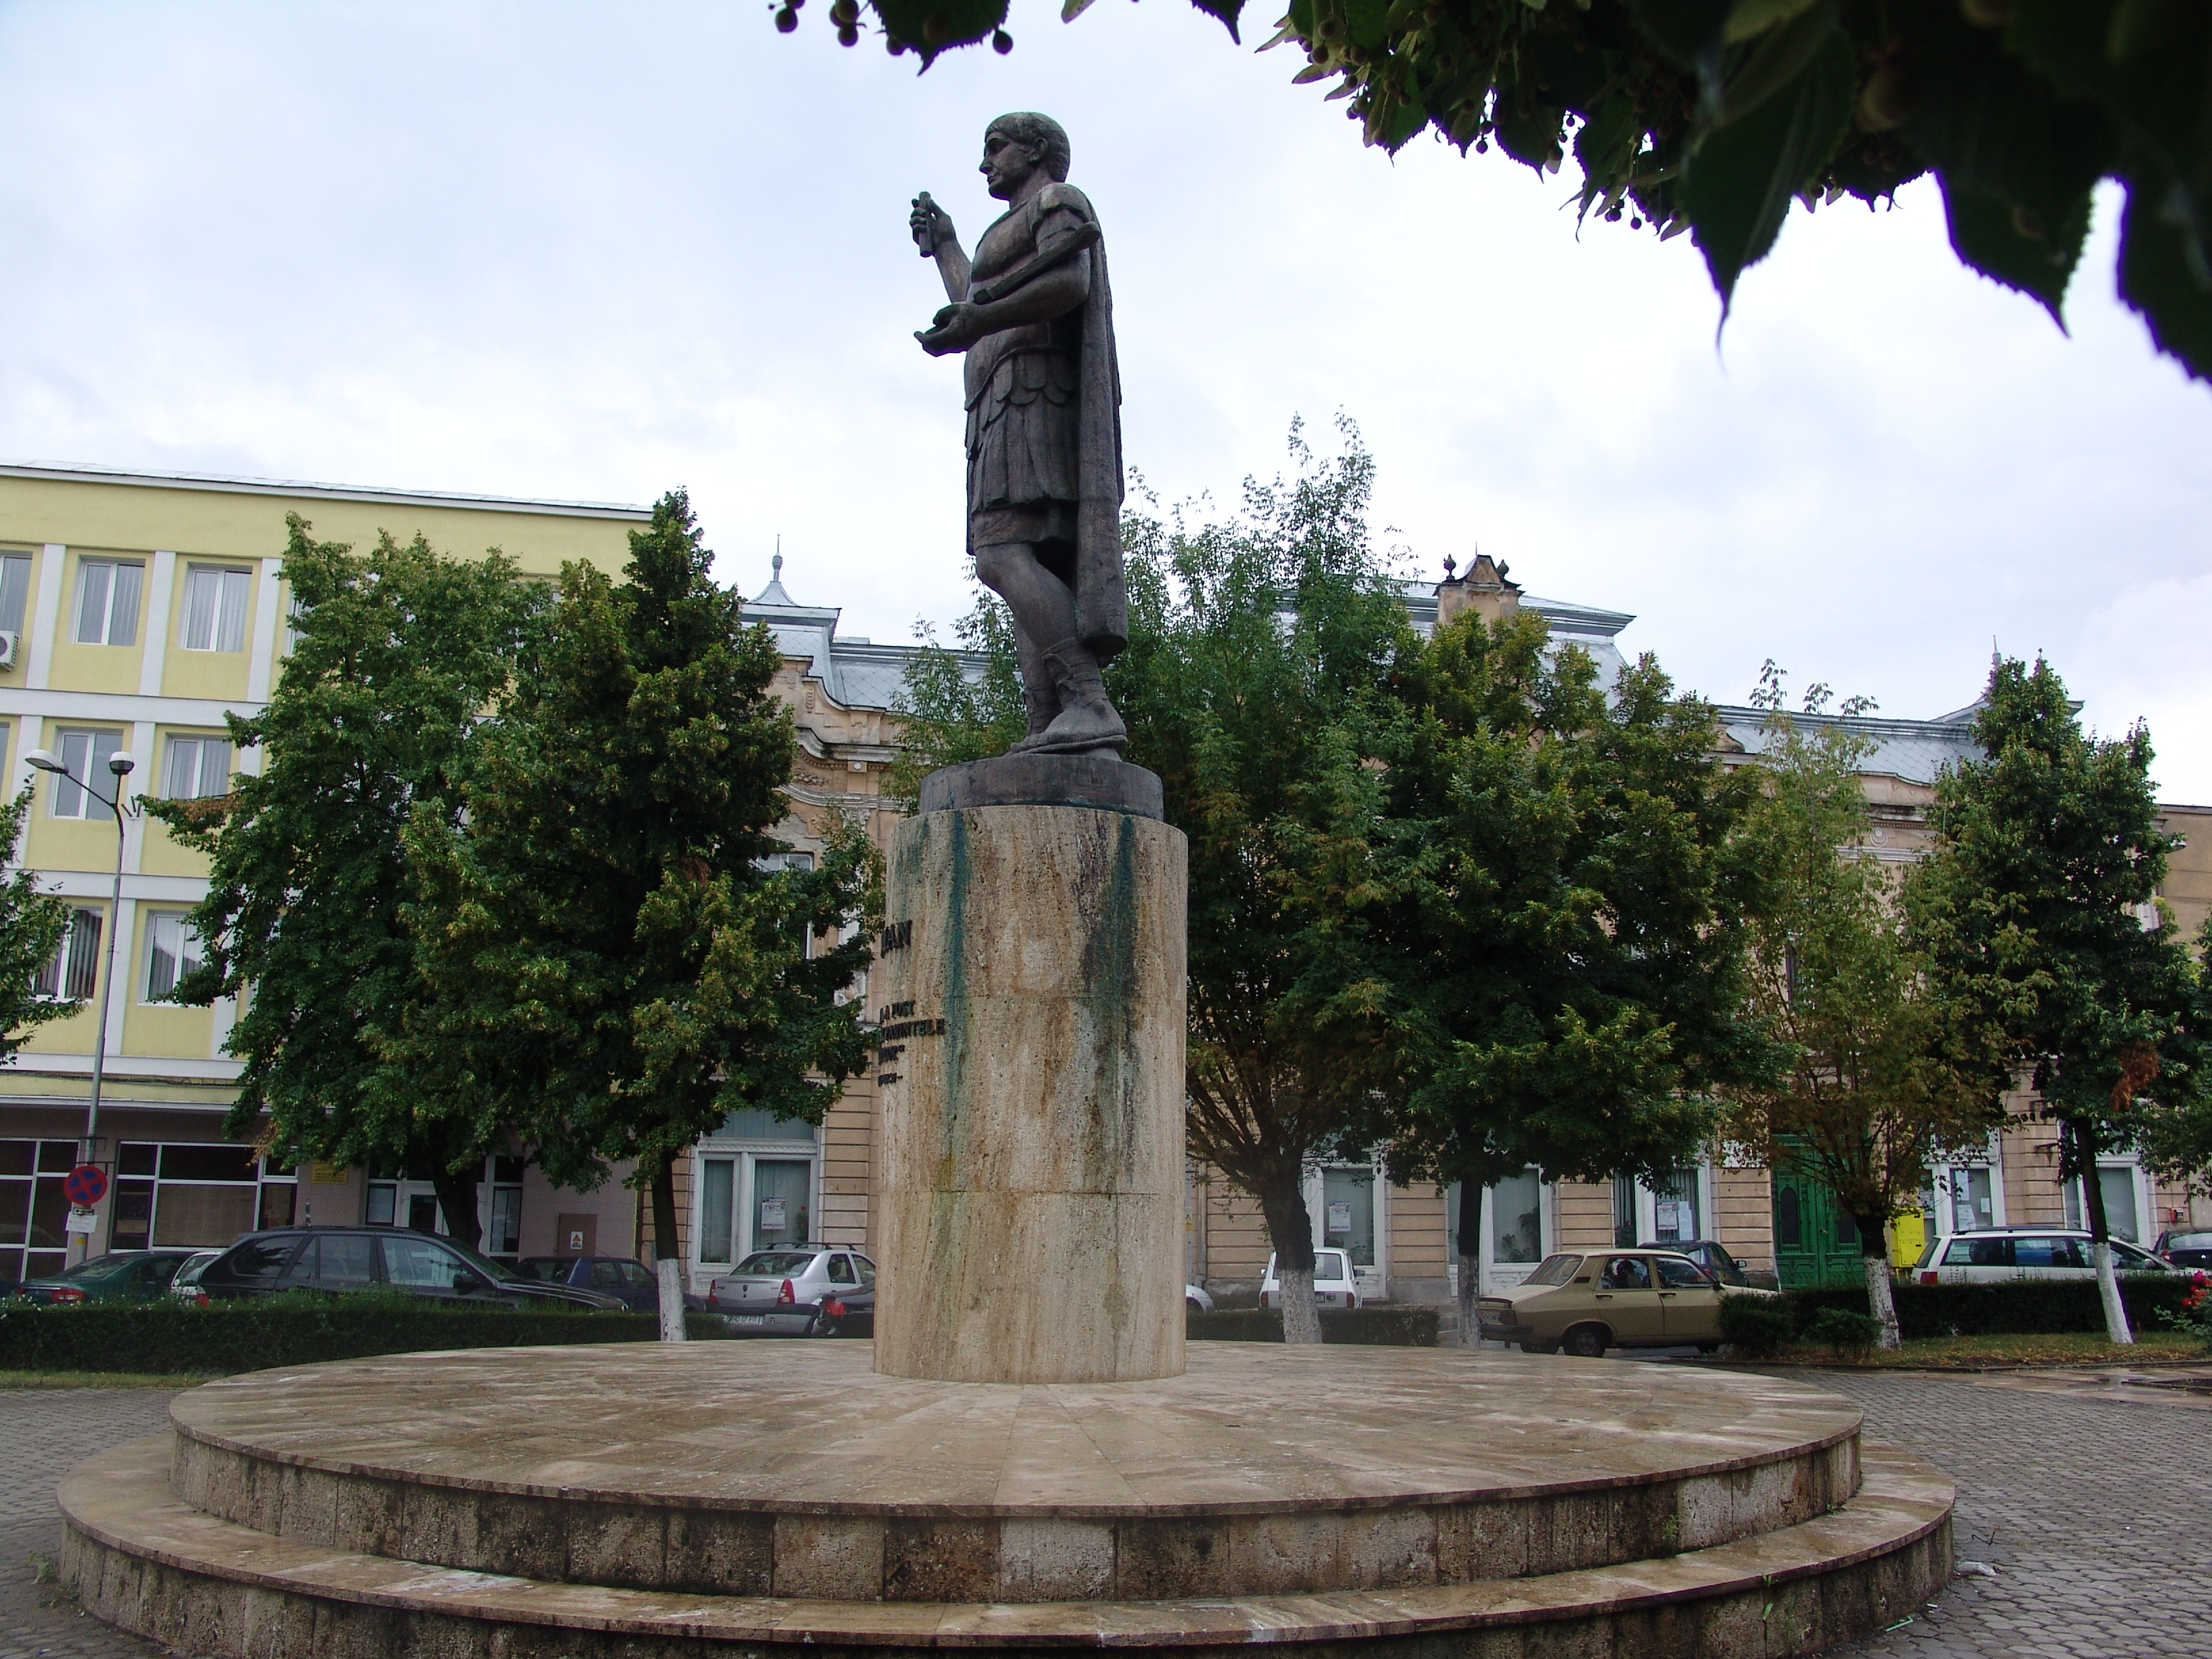 Deva Romania  city pictures gallery : Statue of Traian, Deva, Romania Wikimedia Commons